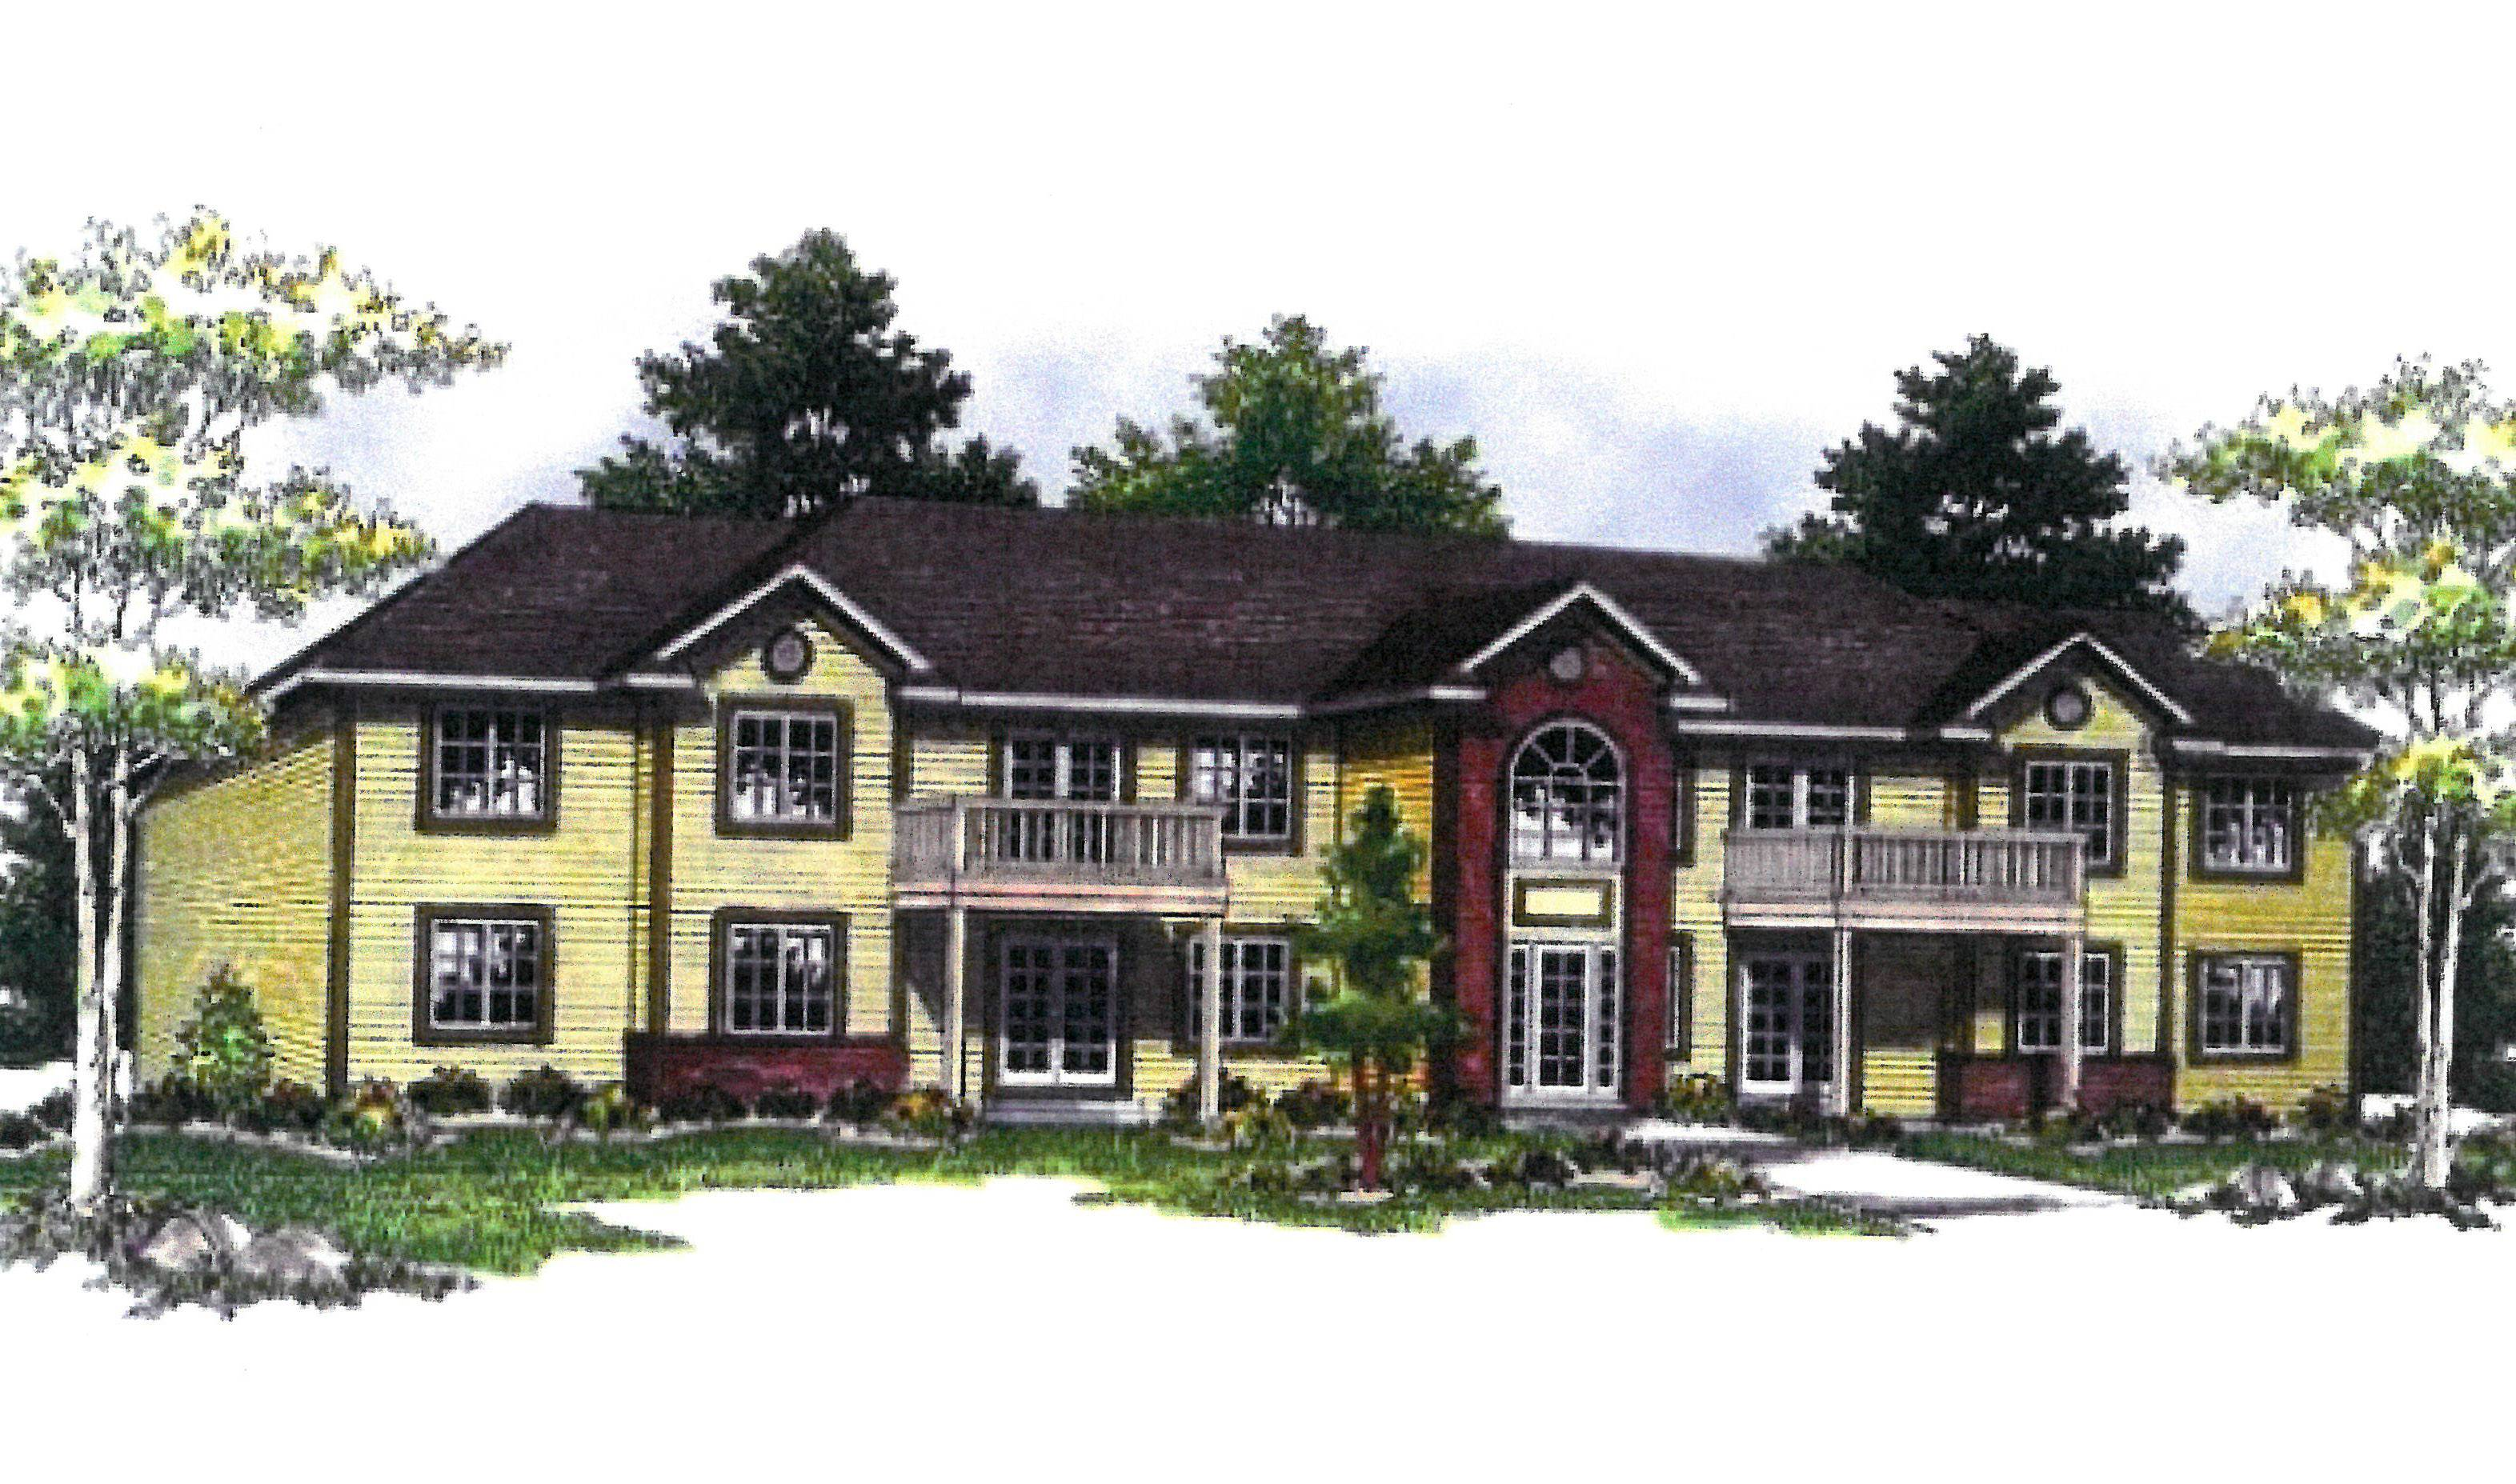 Local Developer Bruce Oehlerking Is Proposing Building 10 Market Rate  Rental Apartment Buildings On The